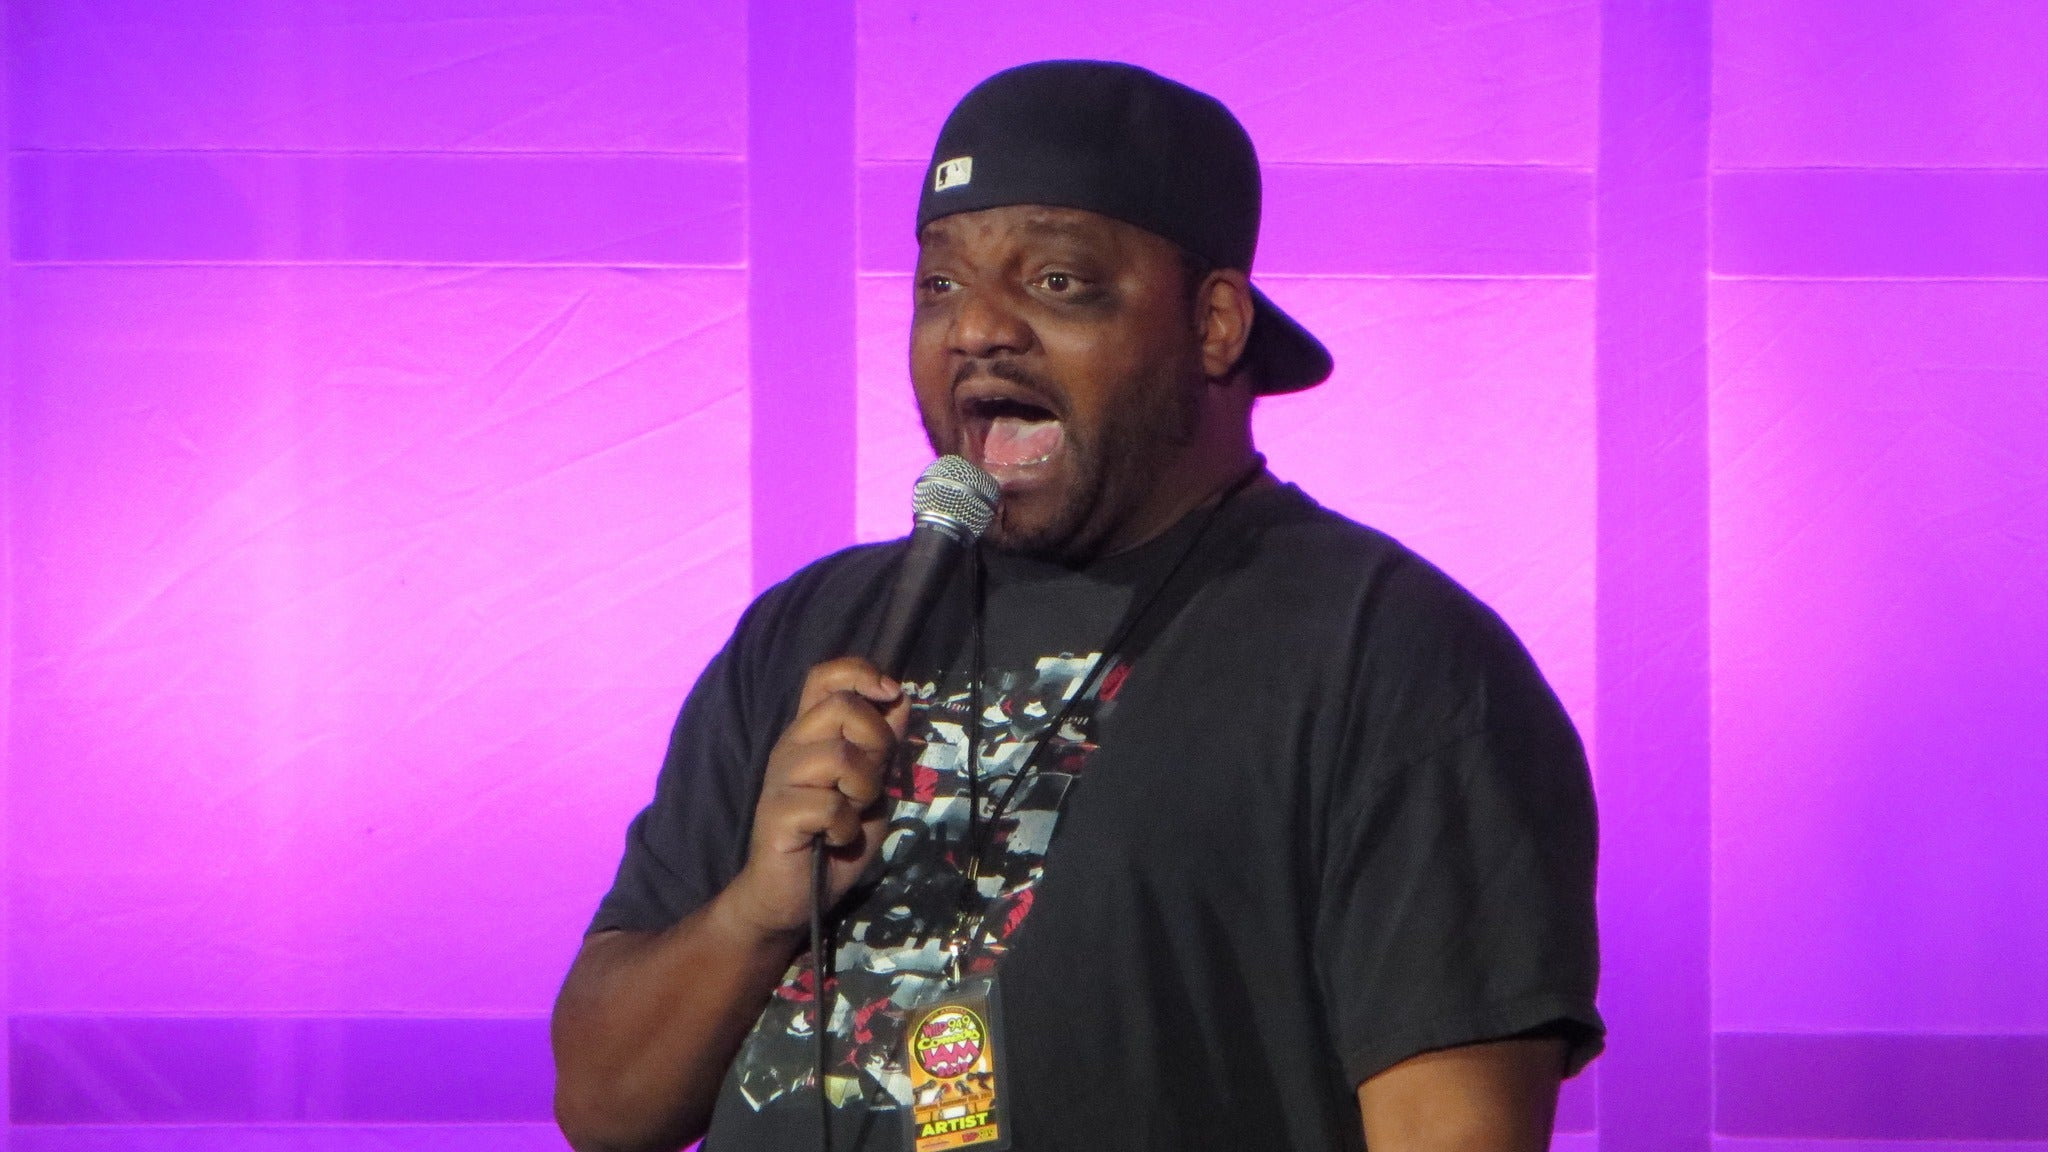 Aries Spears at Chicago Improv